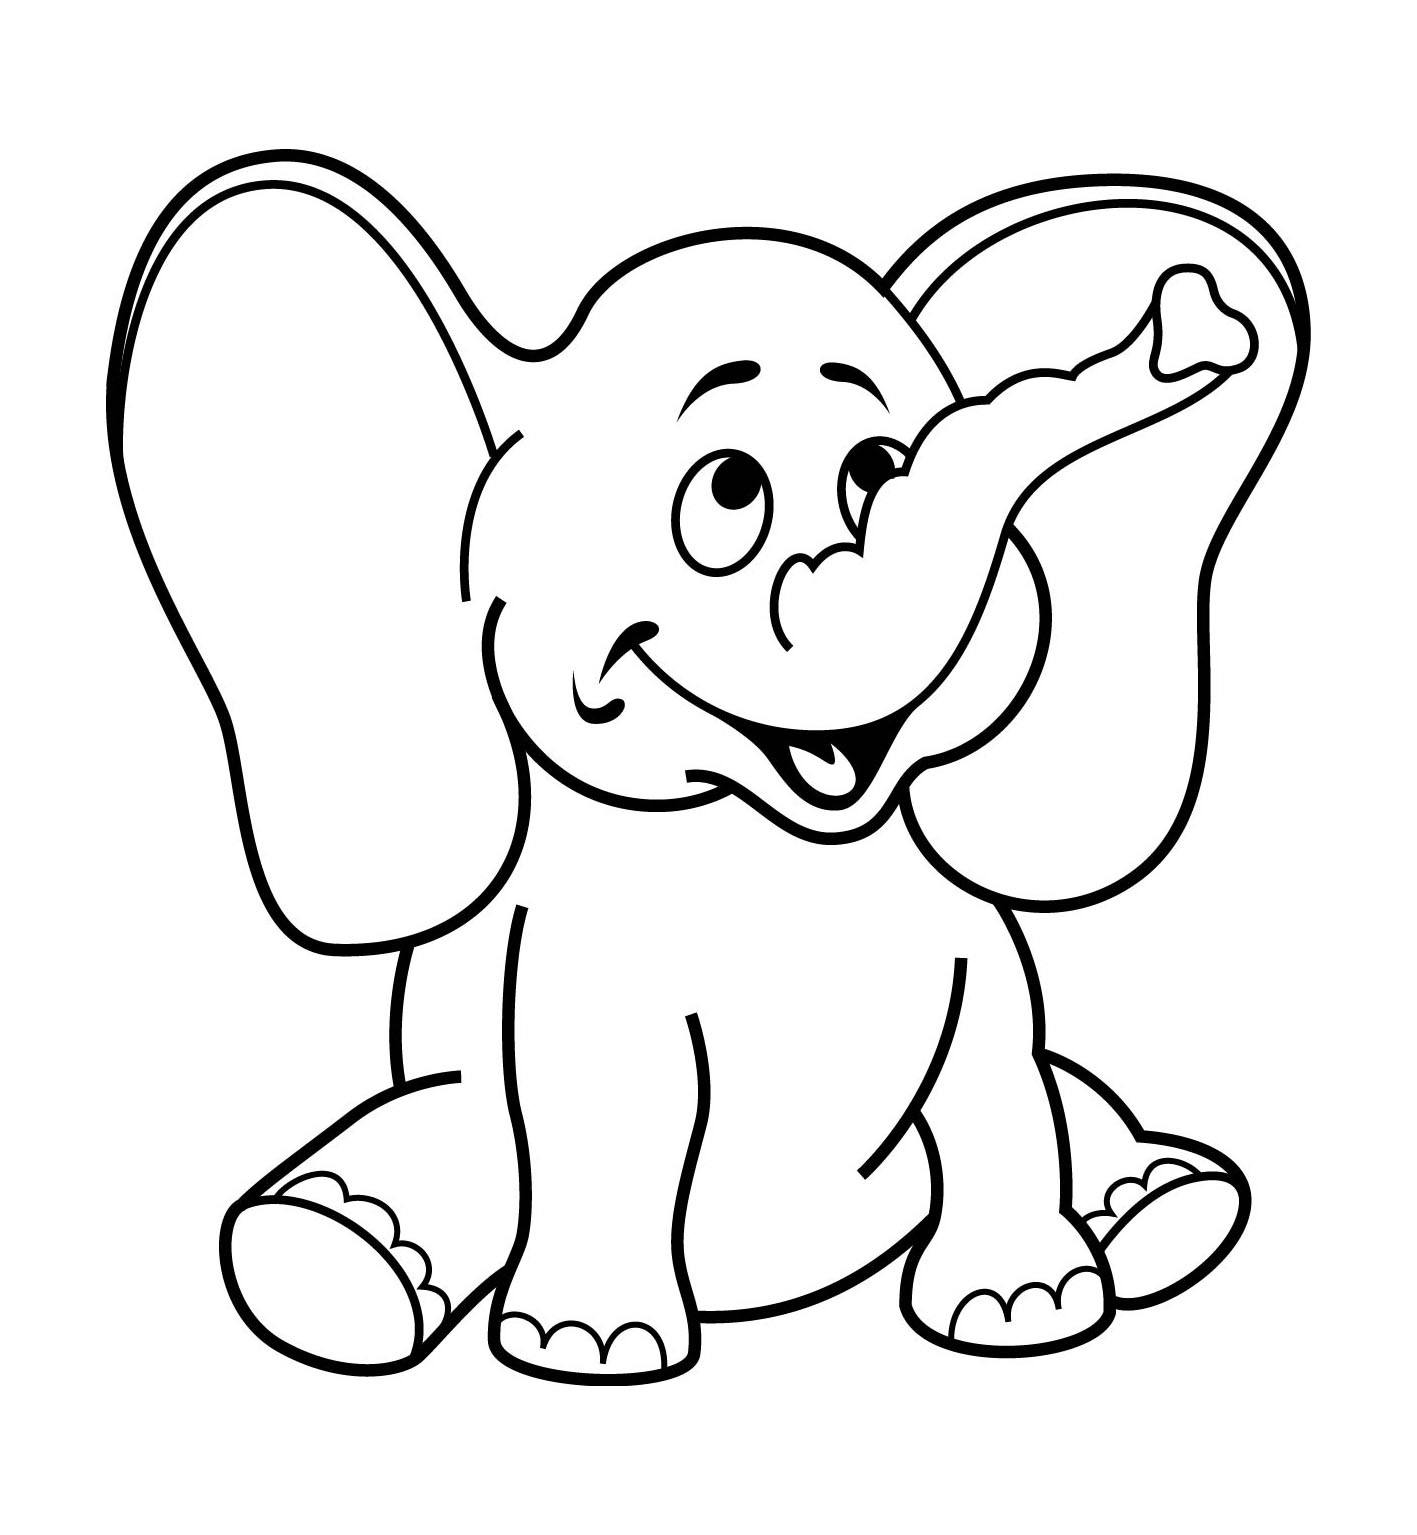 ballet coloring pages - coloring pages for 3 year olds